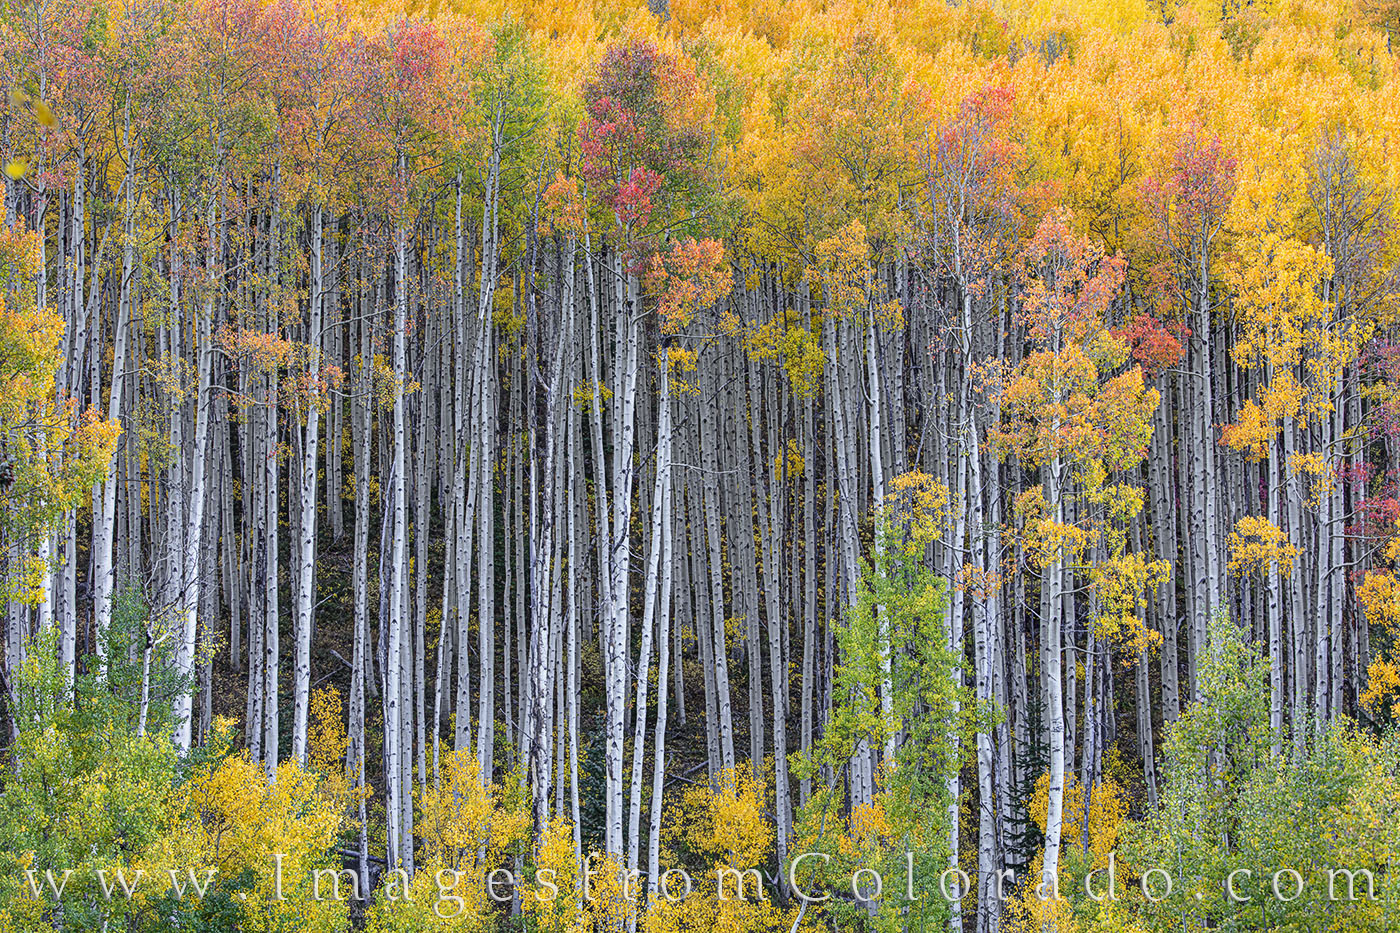 aspen, maroon bells, autumn, fall, orange, yellow, october, cool, photo